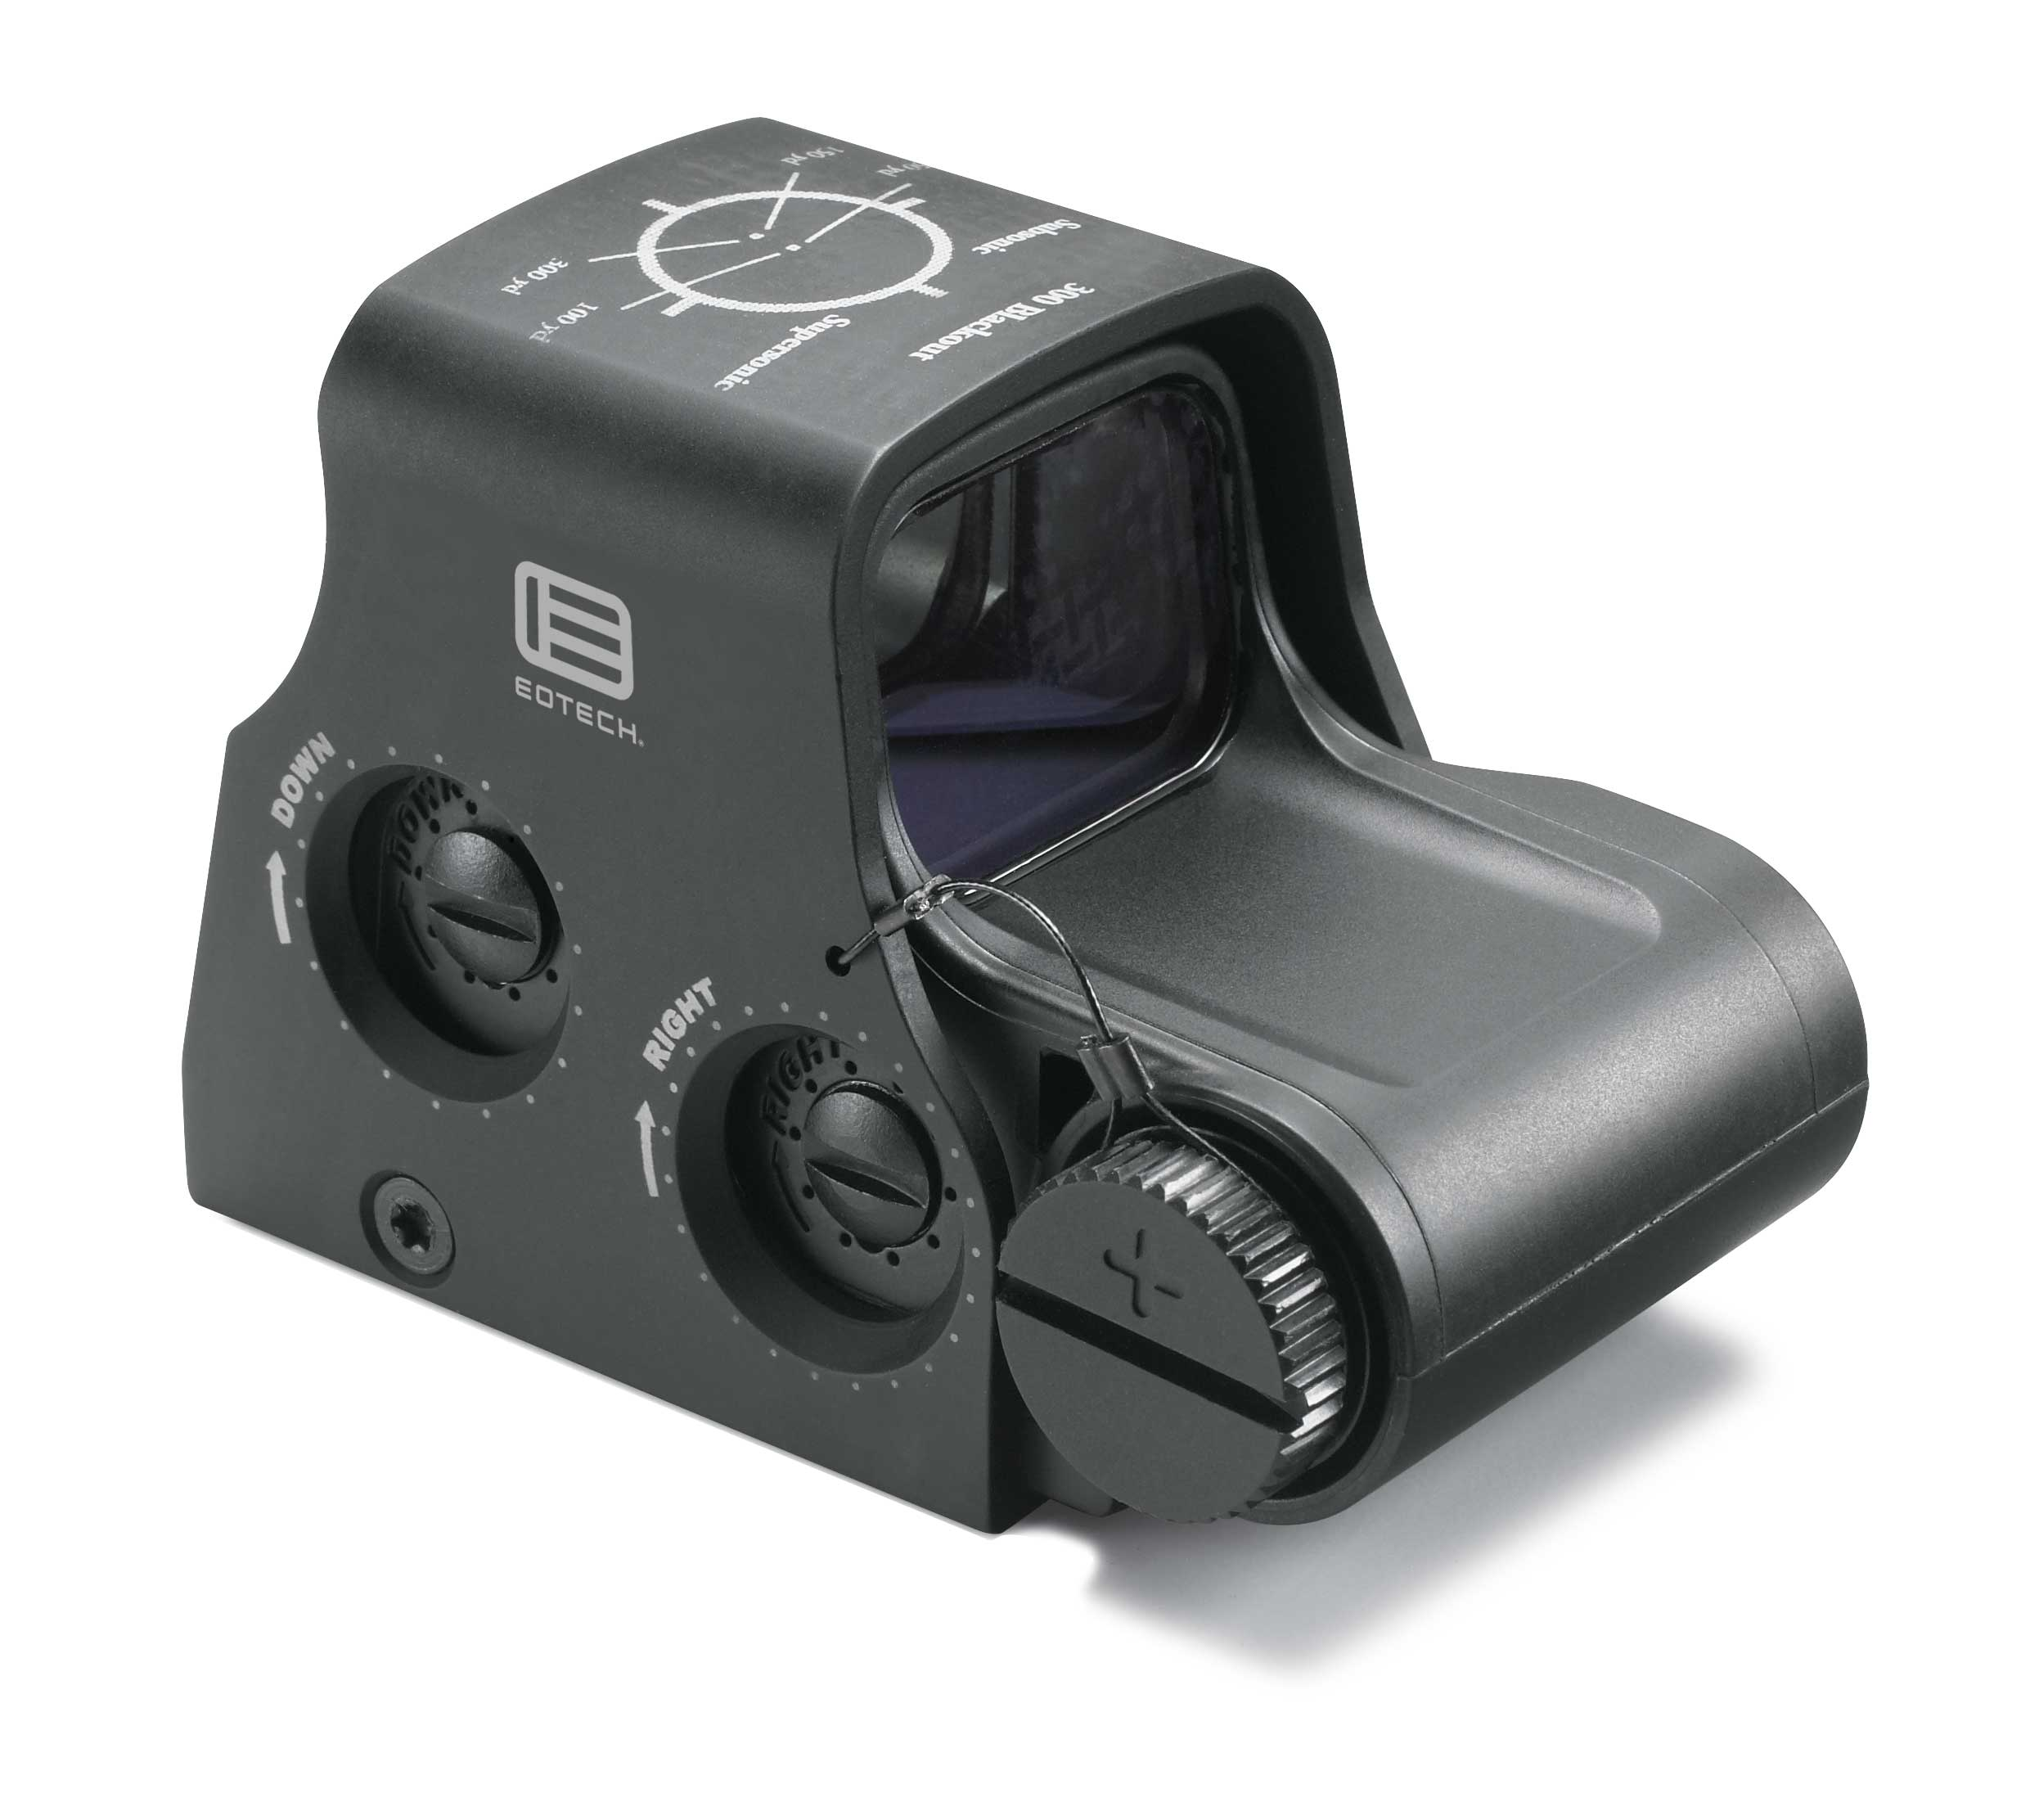 EOTech HWS Model XPS2-300 Holographic Sight - 1x - Illum. 300 Blackout Ring w/ 2 1-MOA Dots - 1 MOA Red Dot - Matte